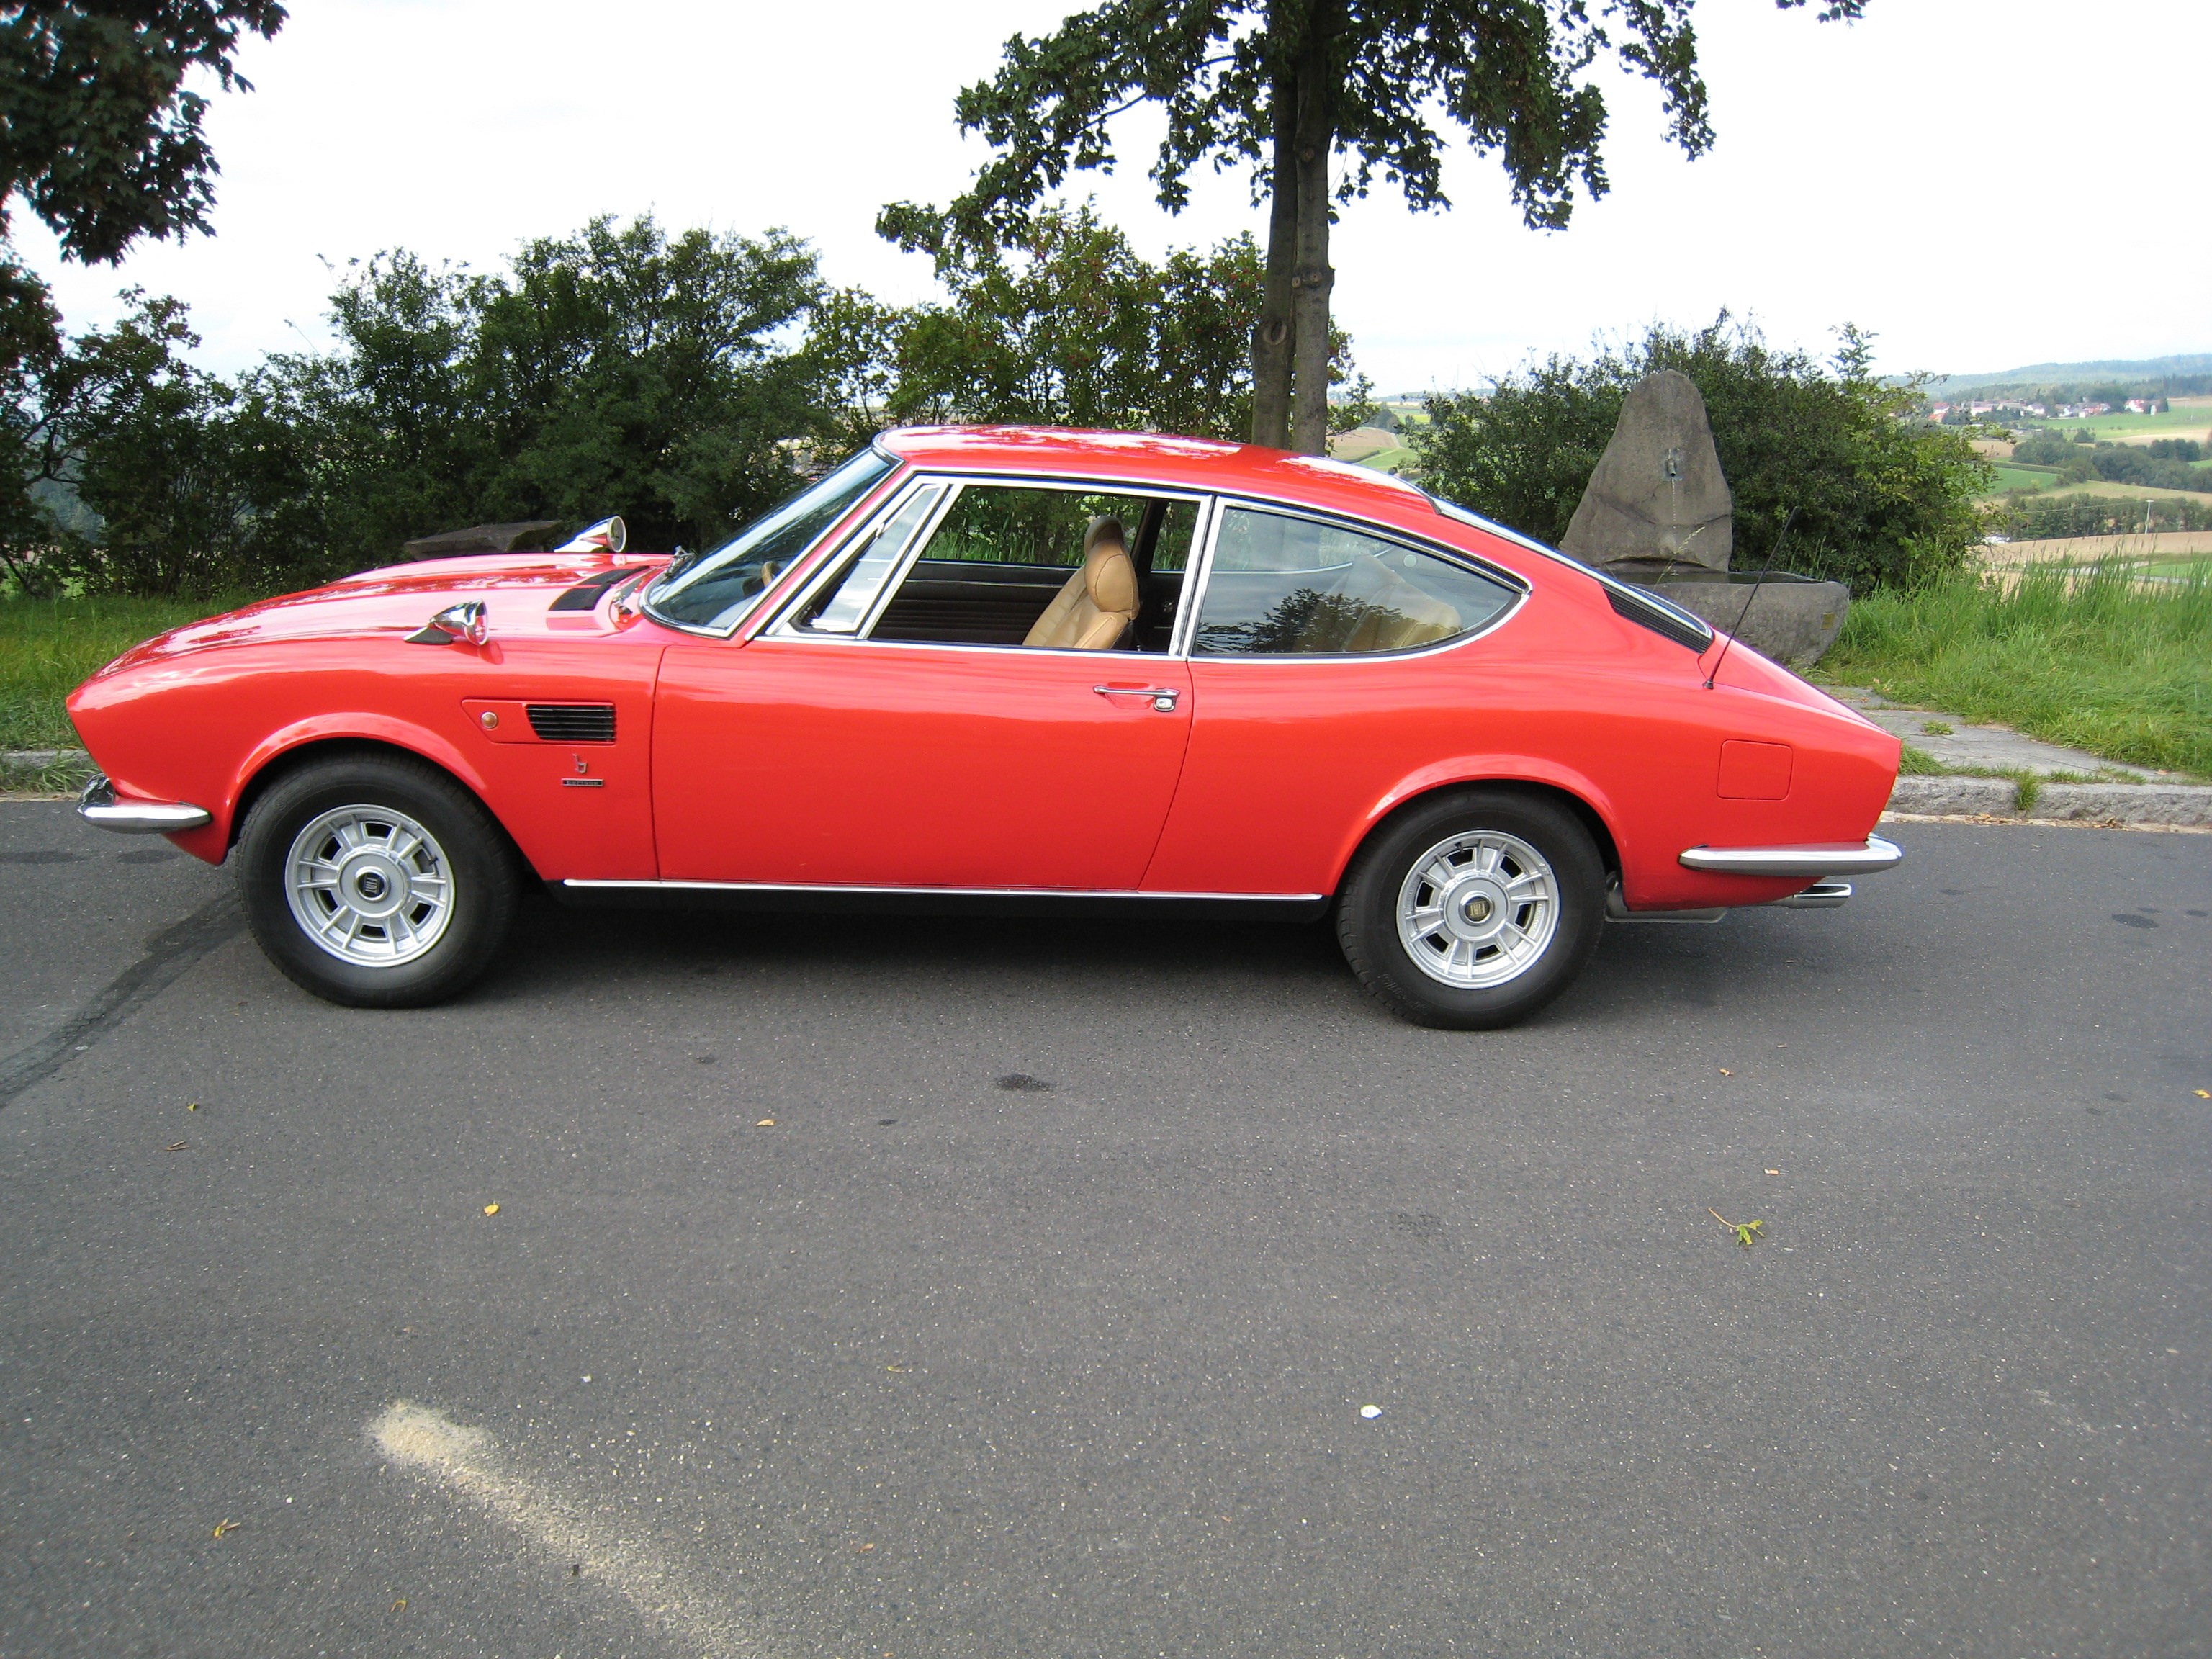 67 Fiat 125 Vignale Samantha additionally 1975 Fiat 124 Coupe furthermore 1947 Ford Coupe together with 1973 Alfa Romeo Gtv 2000 furthermore Abarth 124 Spider Convertible Manual 2016 Review Road Test 47907. on fiat spider for sale